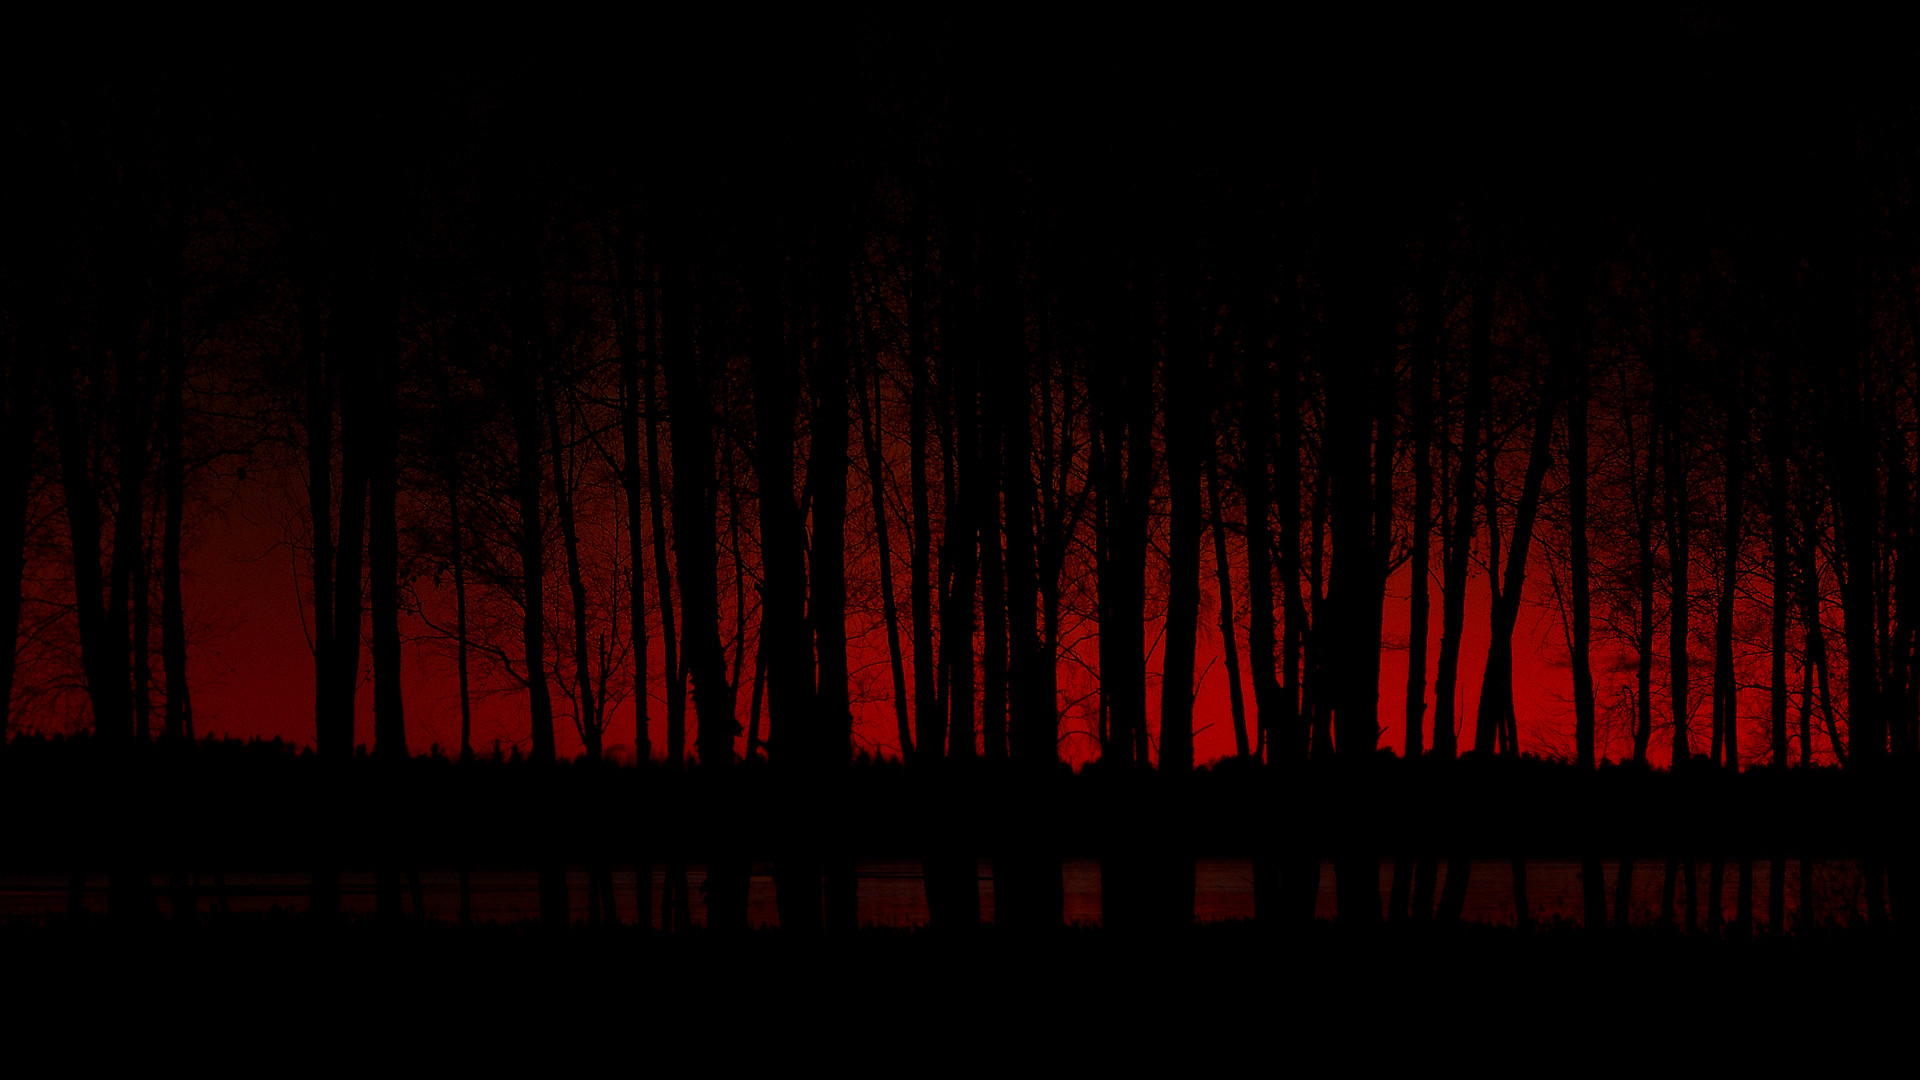 1920x1080 Scary Dark Forest Desktop Wallpaper 64316